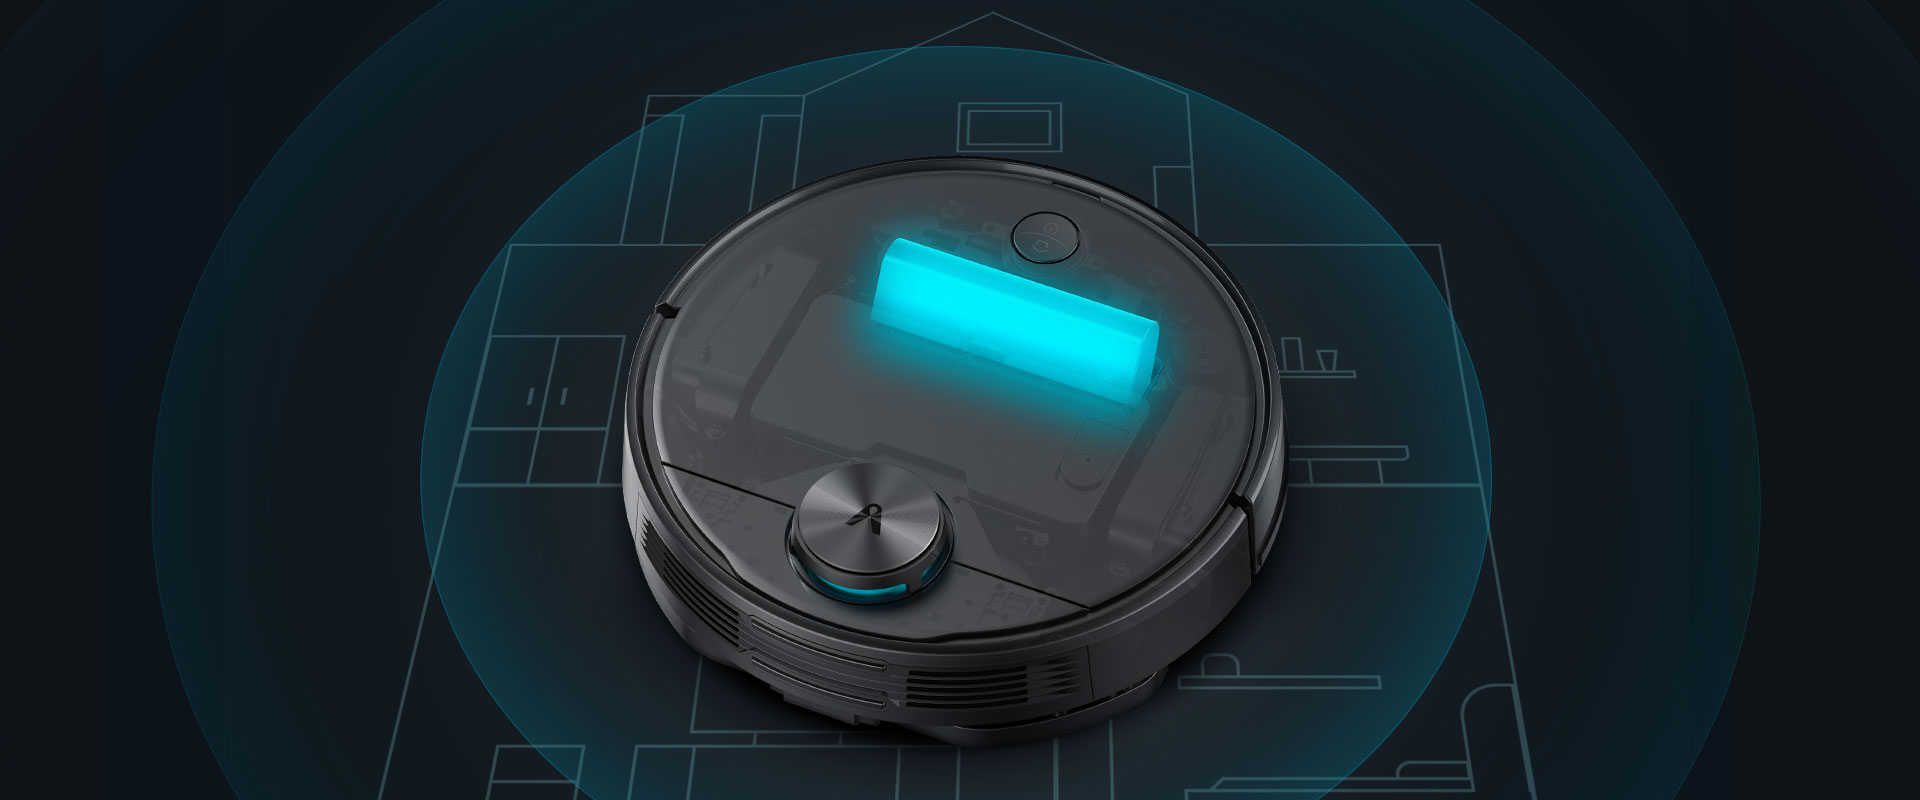 Viomi V3 smart vacuum with 3.2 Hours Long Battery